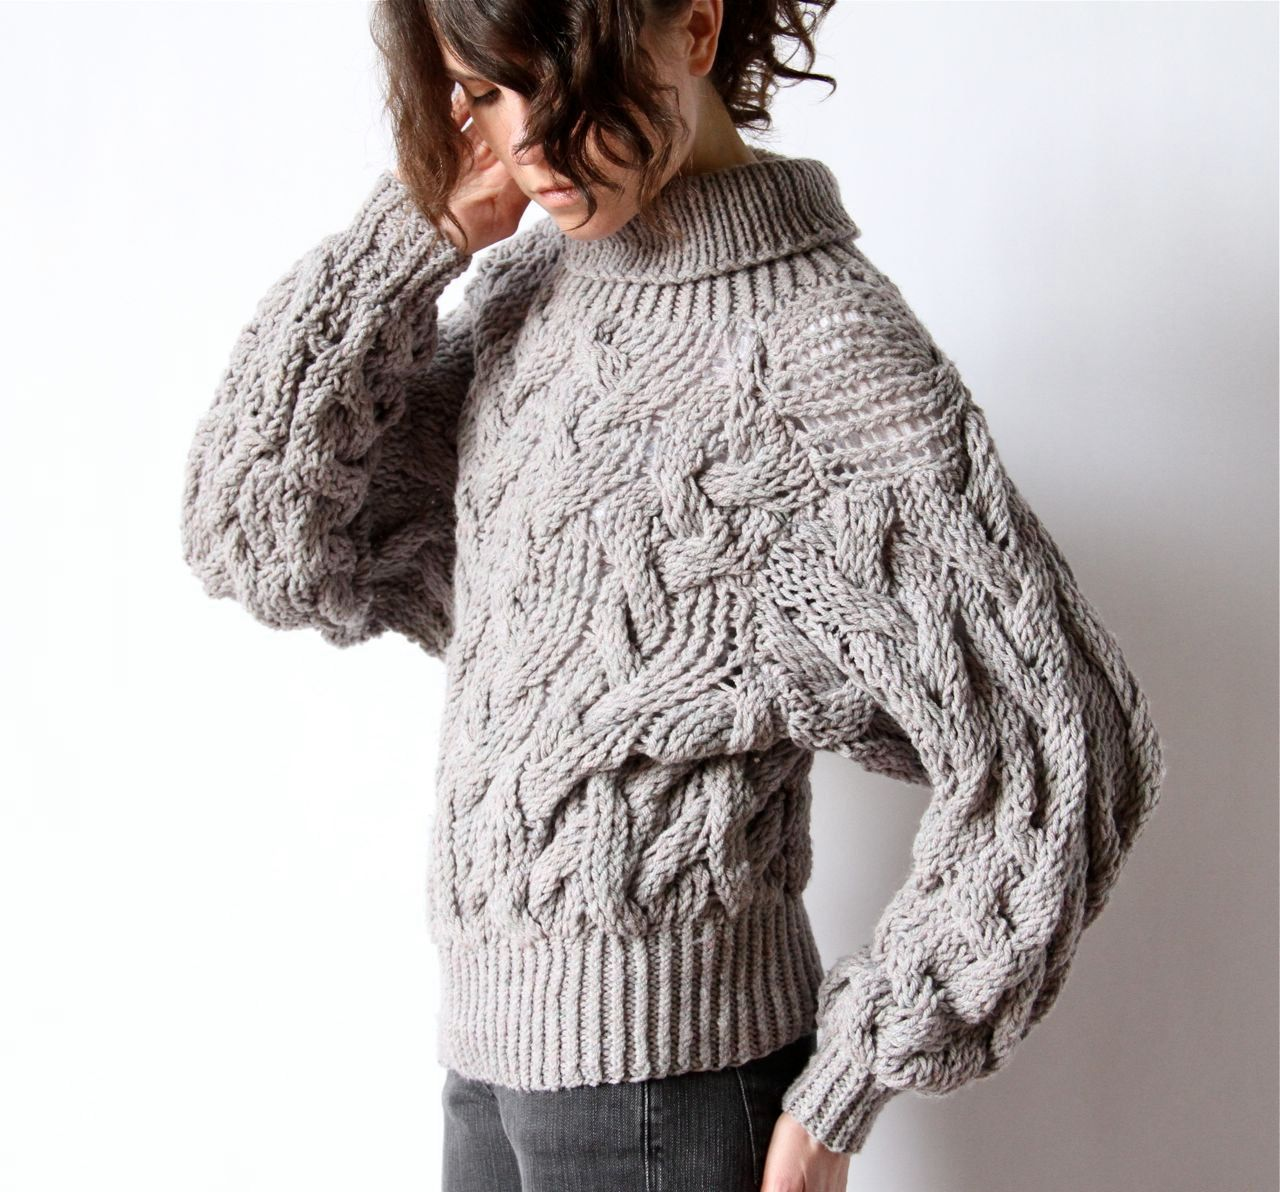 Cable Knit Sweater 80s Avant Garde grey turtleneck crop top ...